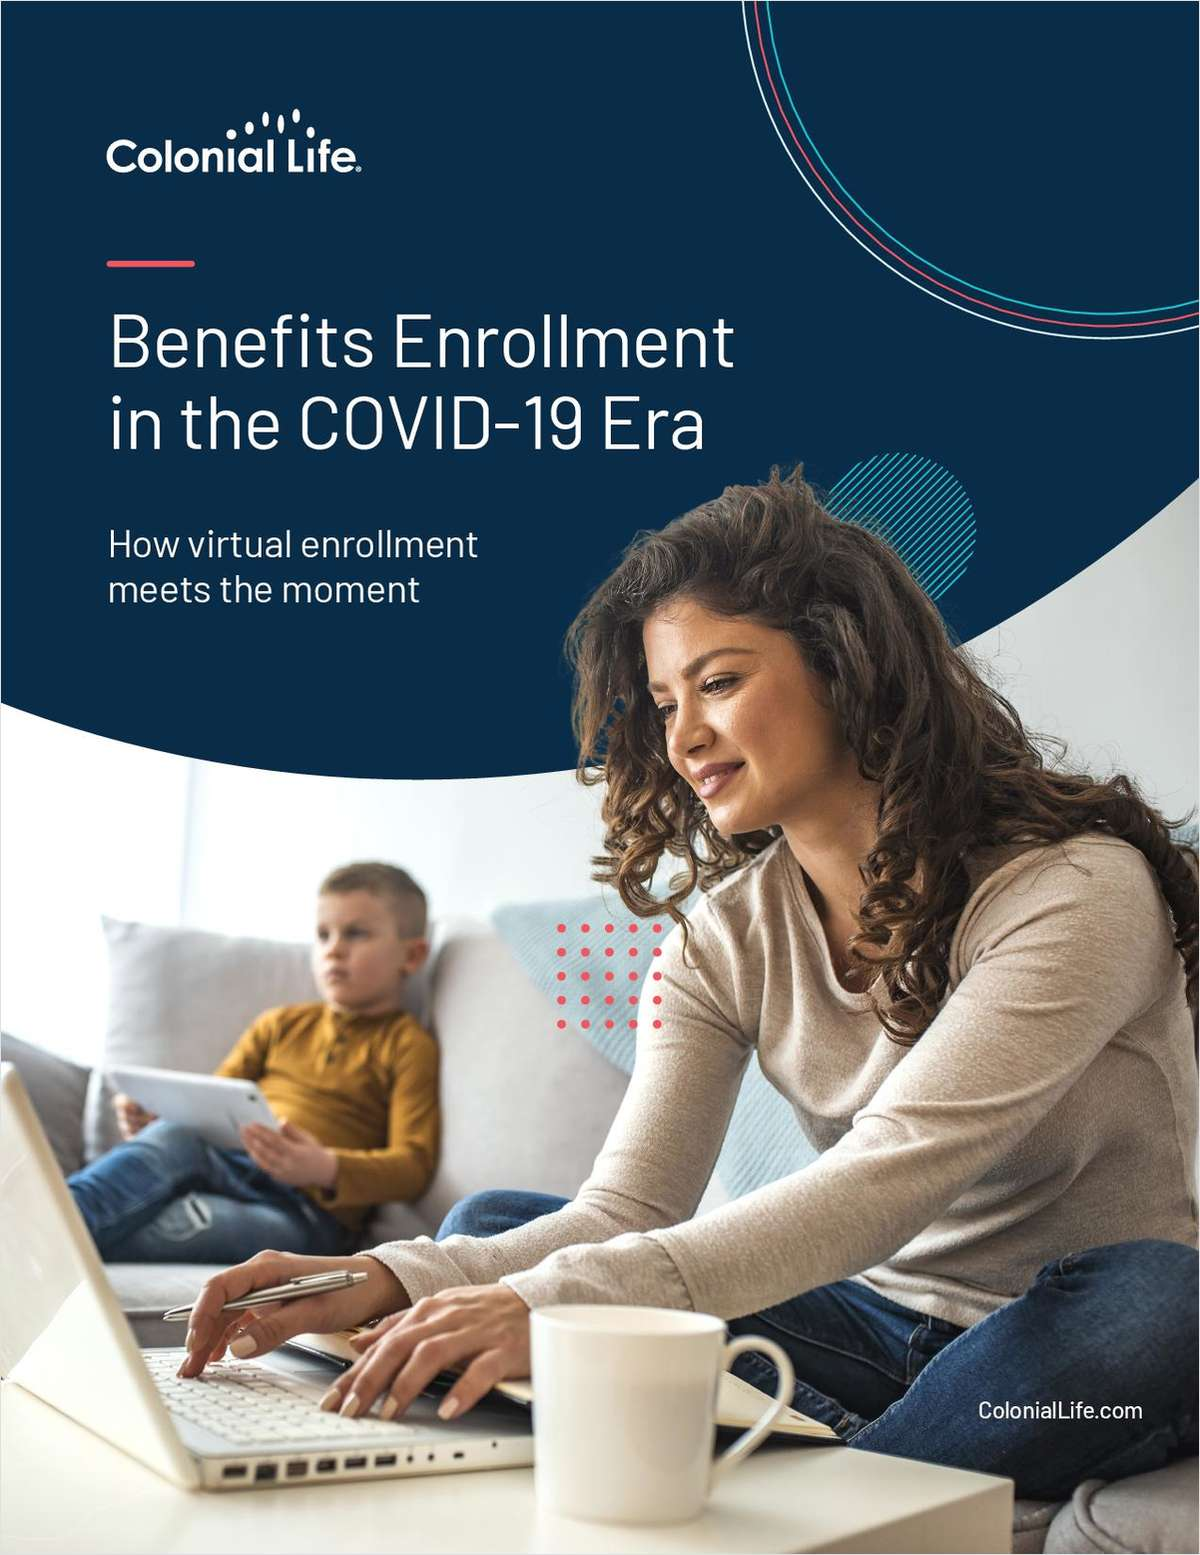 Leaning into Benefits Enrollment in the COVID Era